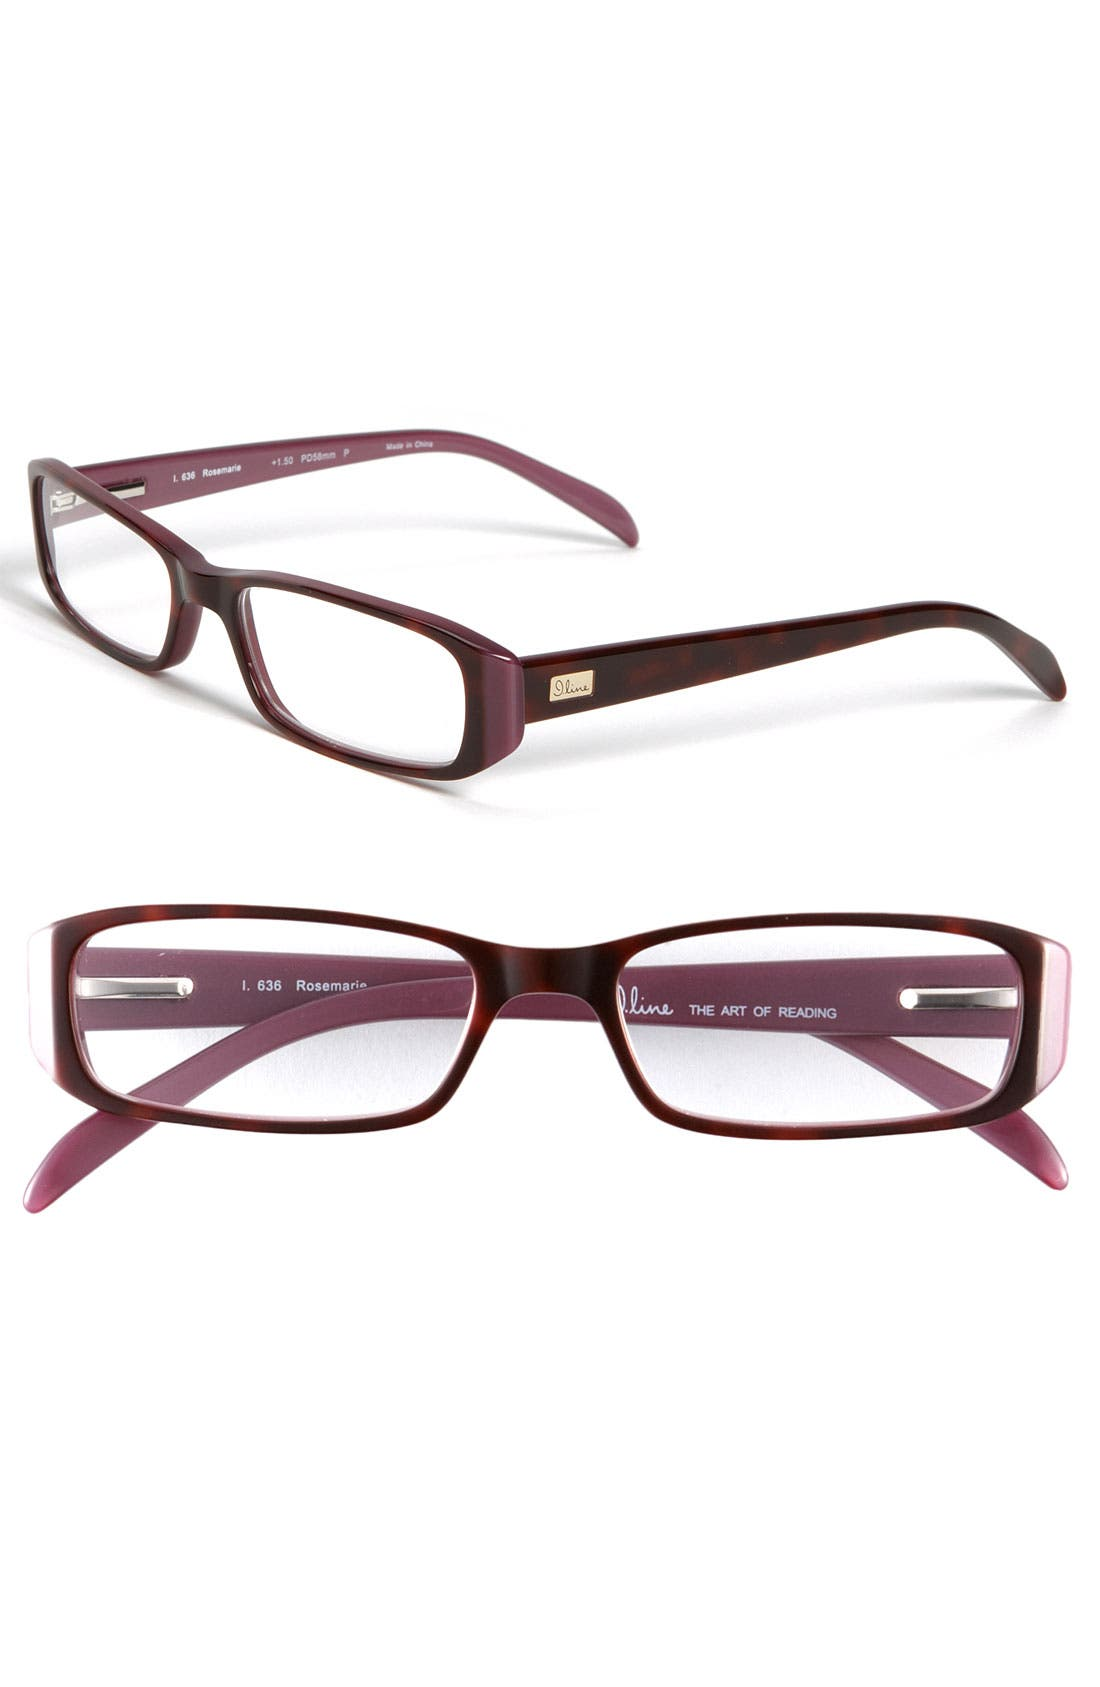 Alternate Image 1 Selected - I Line Eyewear 'Rosemarie' Reading Glasses